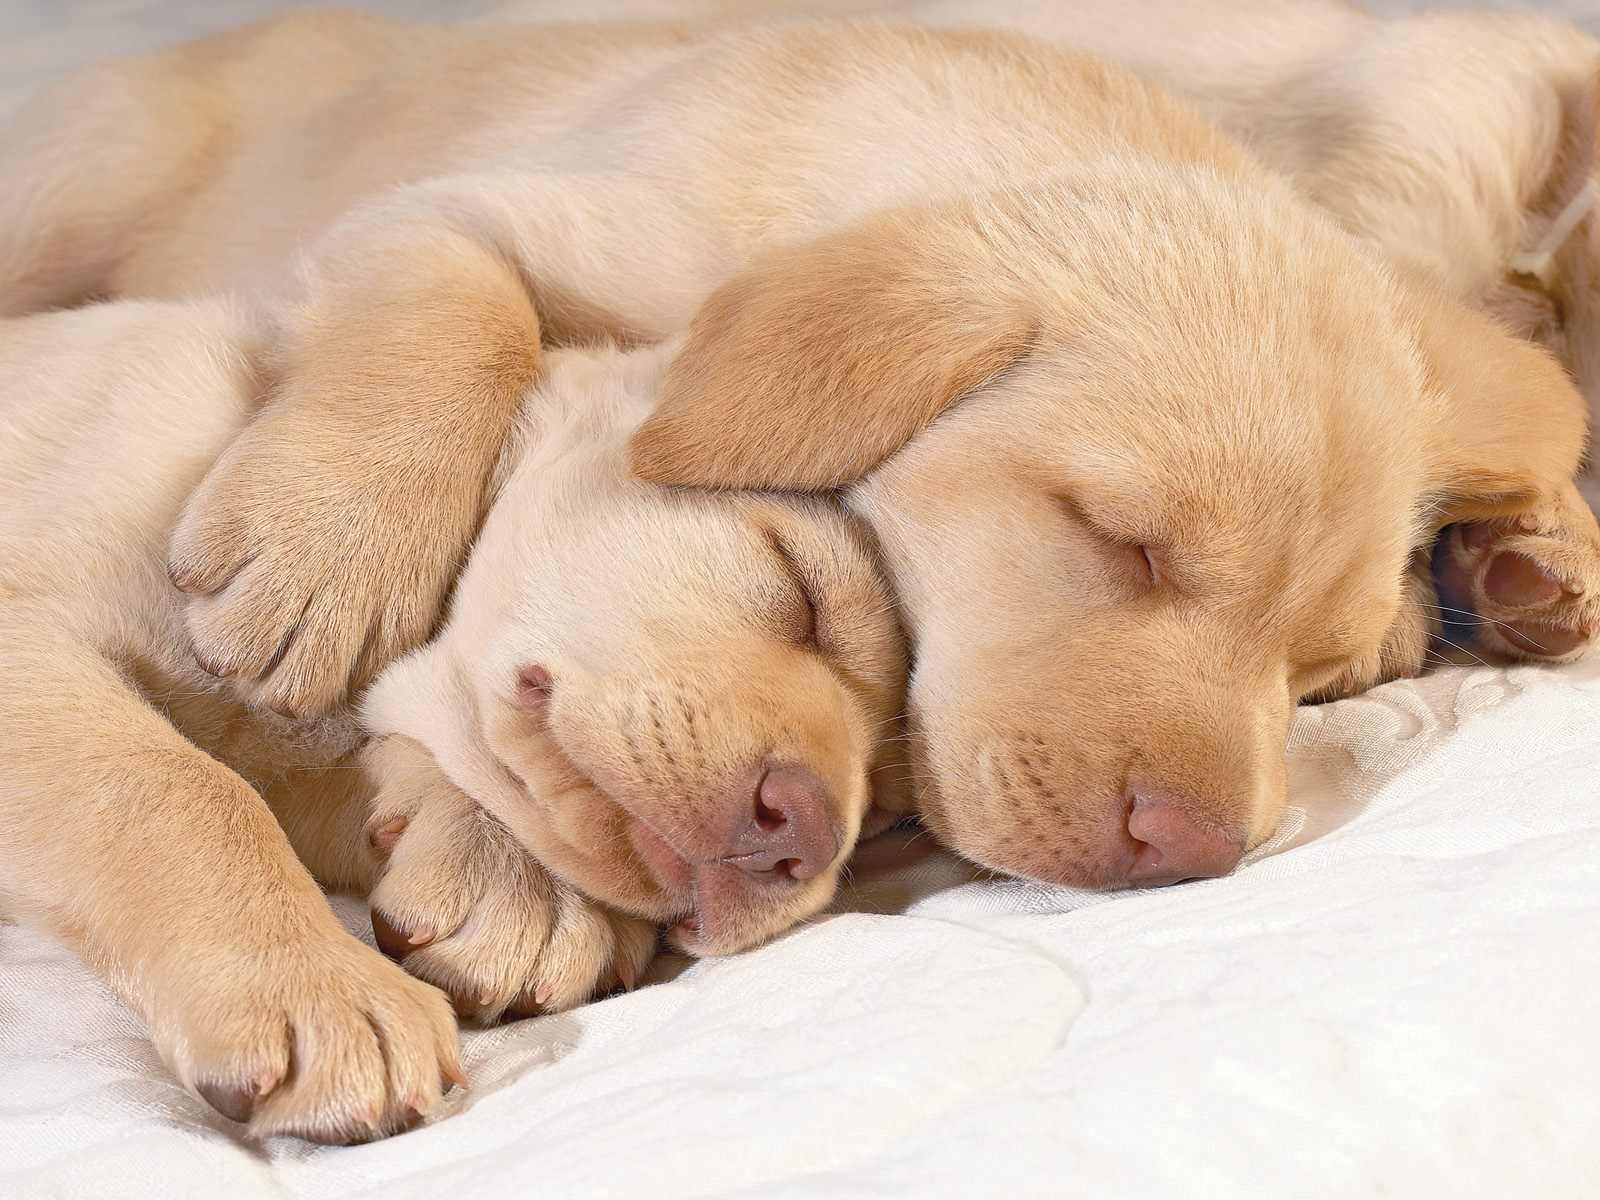 Cute Puppies Sleeping Exactly how much do you love this dude how